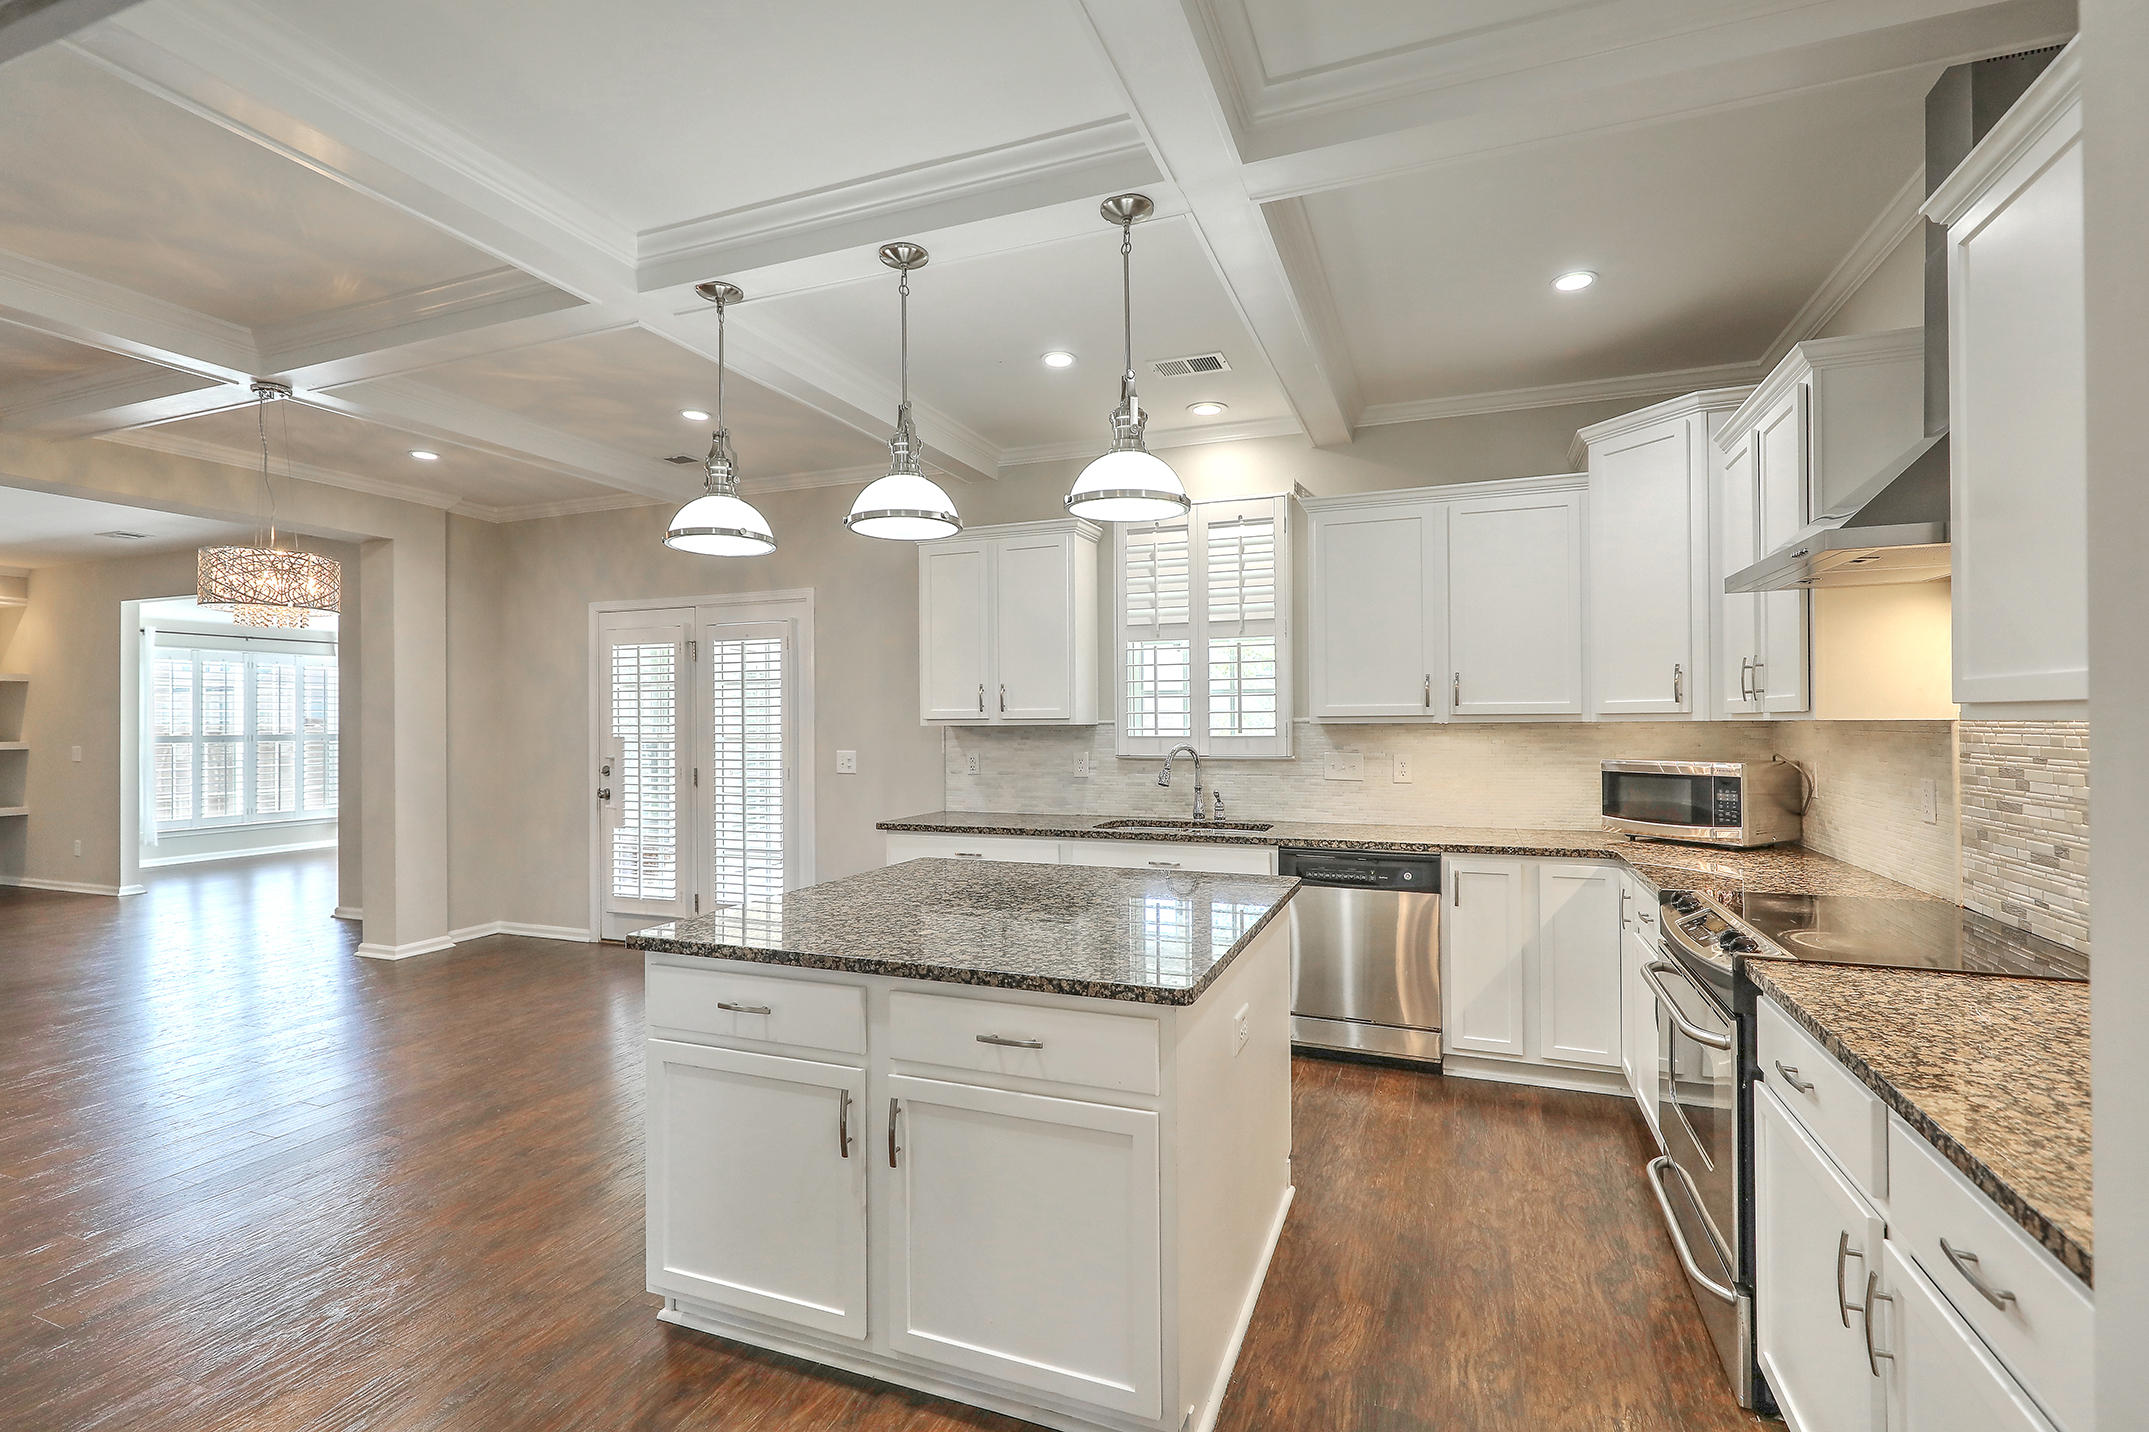 Photo of 276 Pemberly Blvd, Summerville, SC 29483